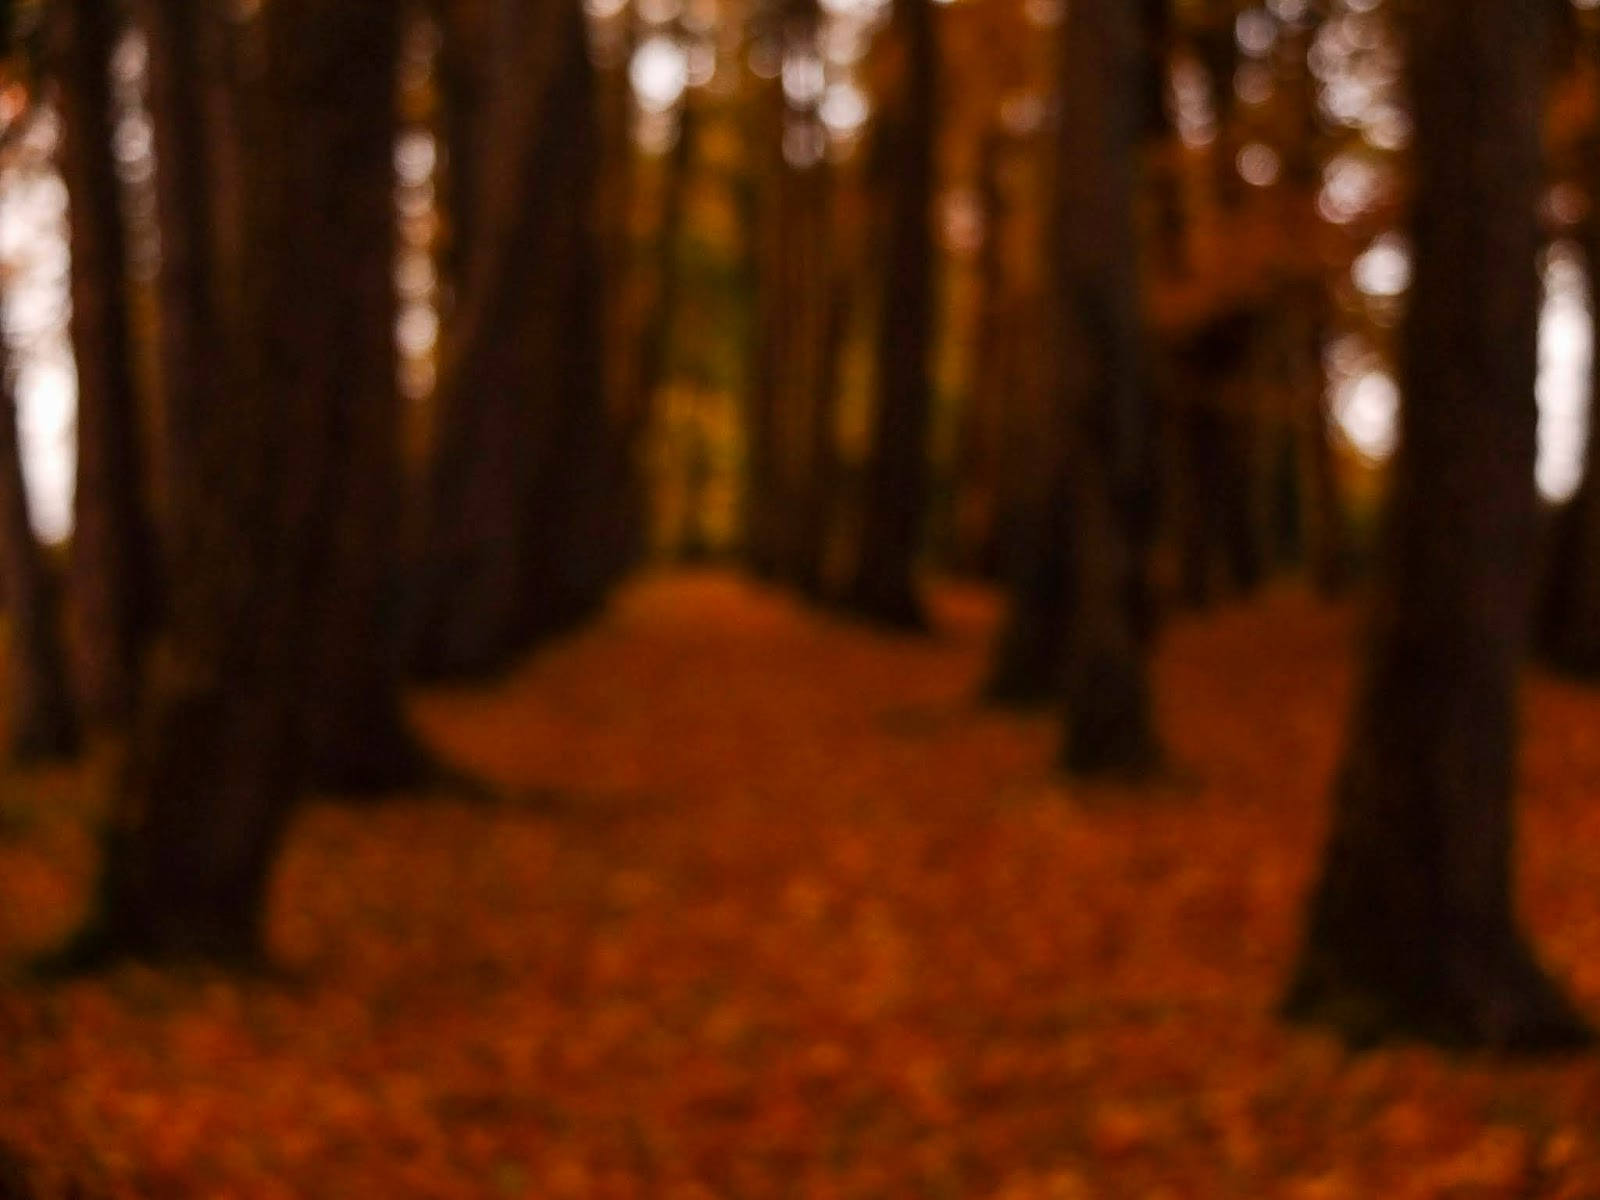 A blurry image of a forest path covered in brown autumn leaves in North Cork.